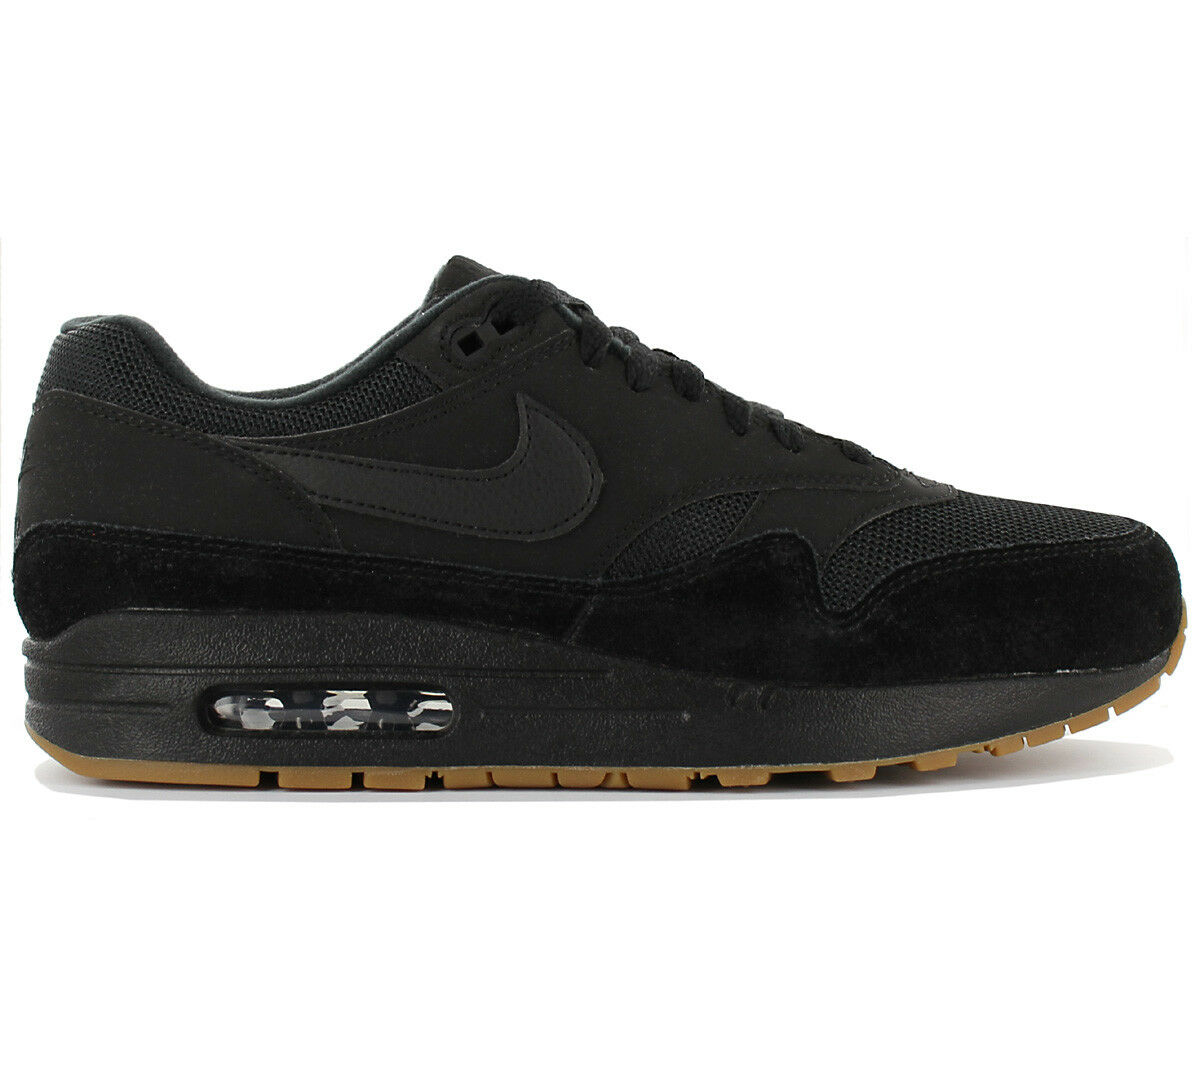 Nike Air Max 1 Baskets / Chaussures Homme Noir Classic de Sport Light AH8145-007